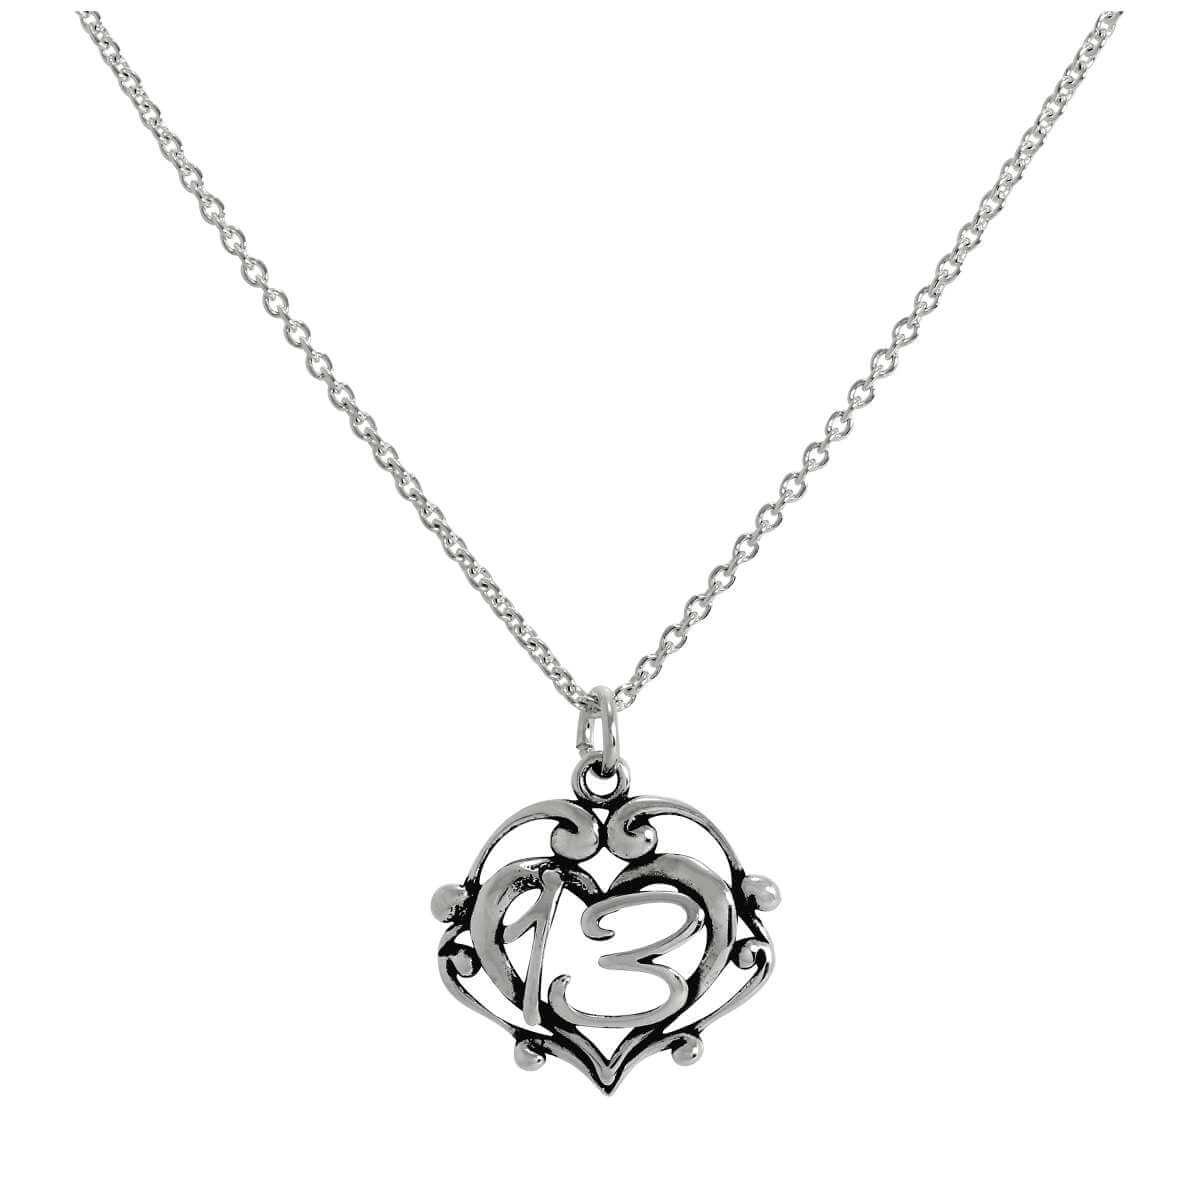 Sterling Silver Filigree Open Heart 13th Birthday Pendant Necklace 16 - 24 Inches